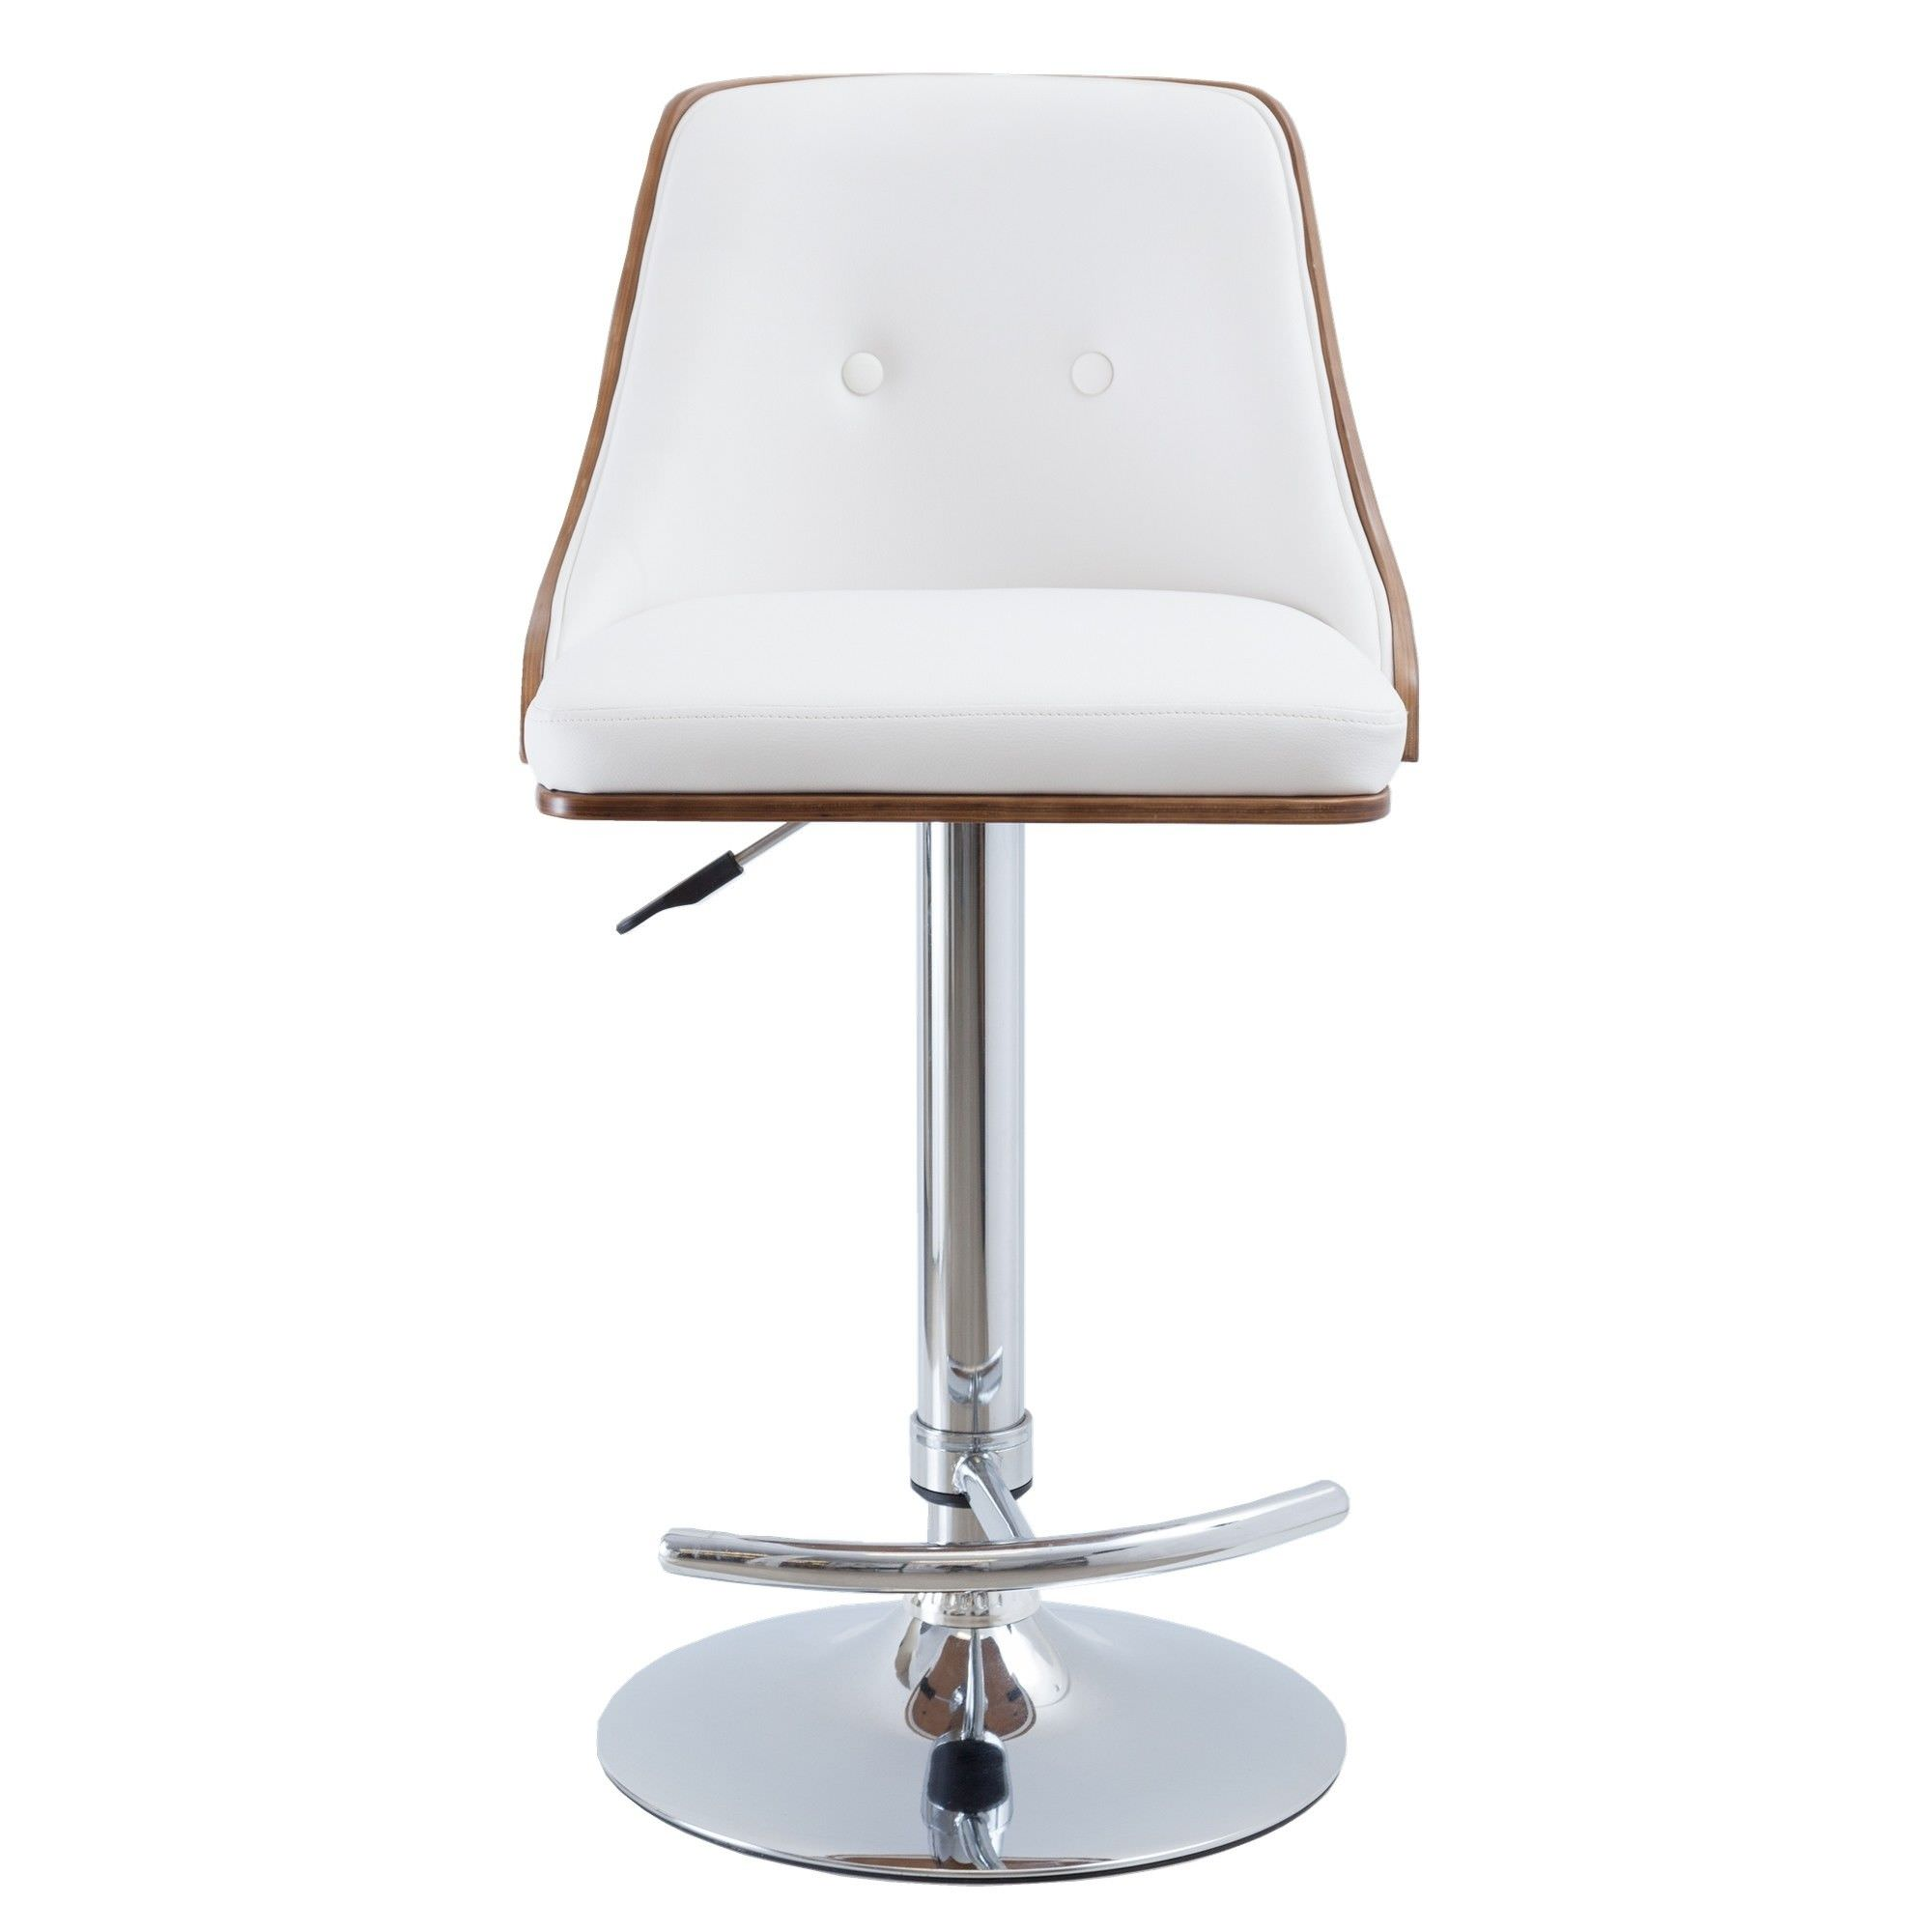 Florence PU Leather & Timber Gas Lift Bar Chair, White